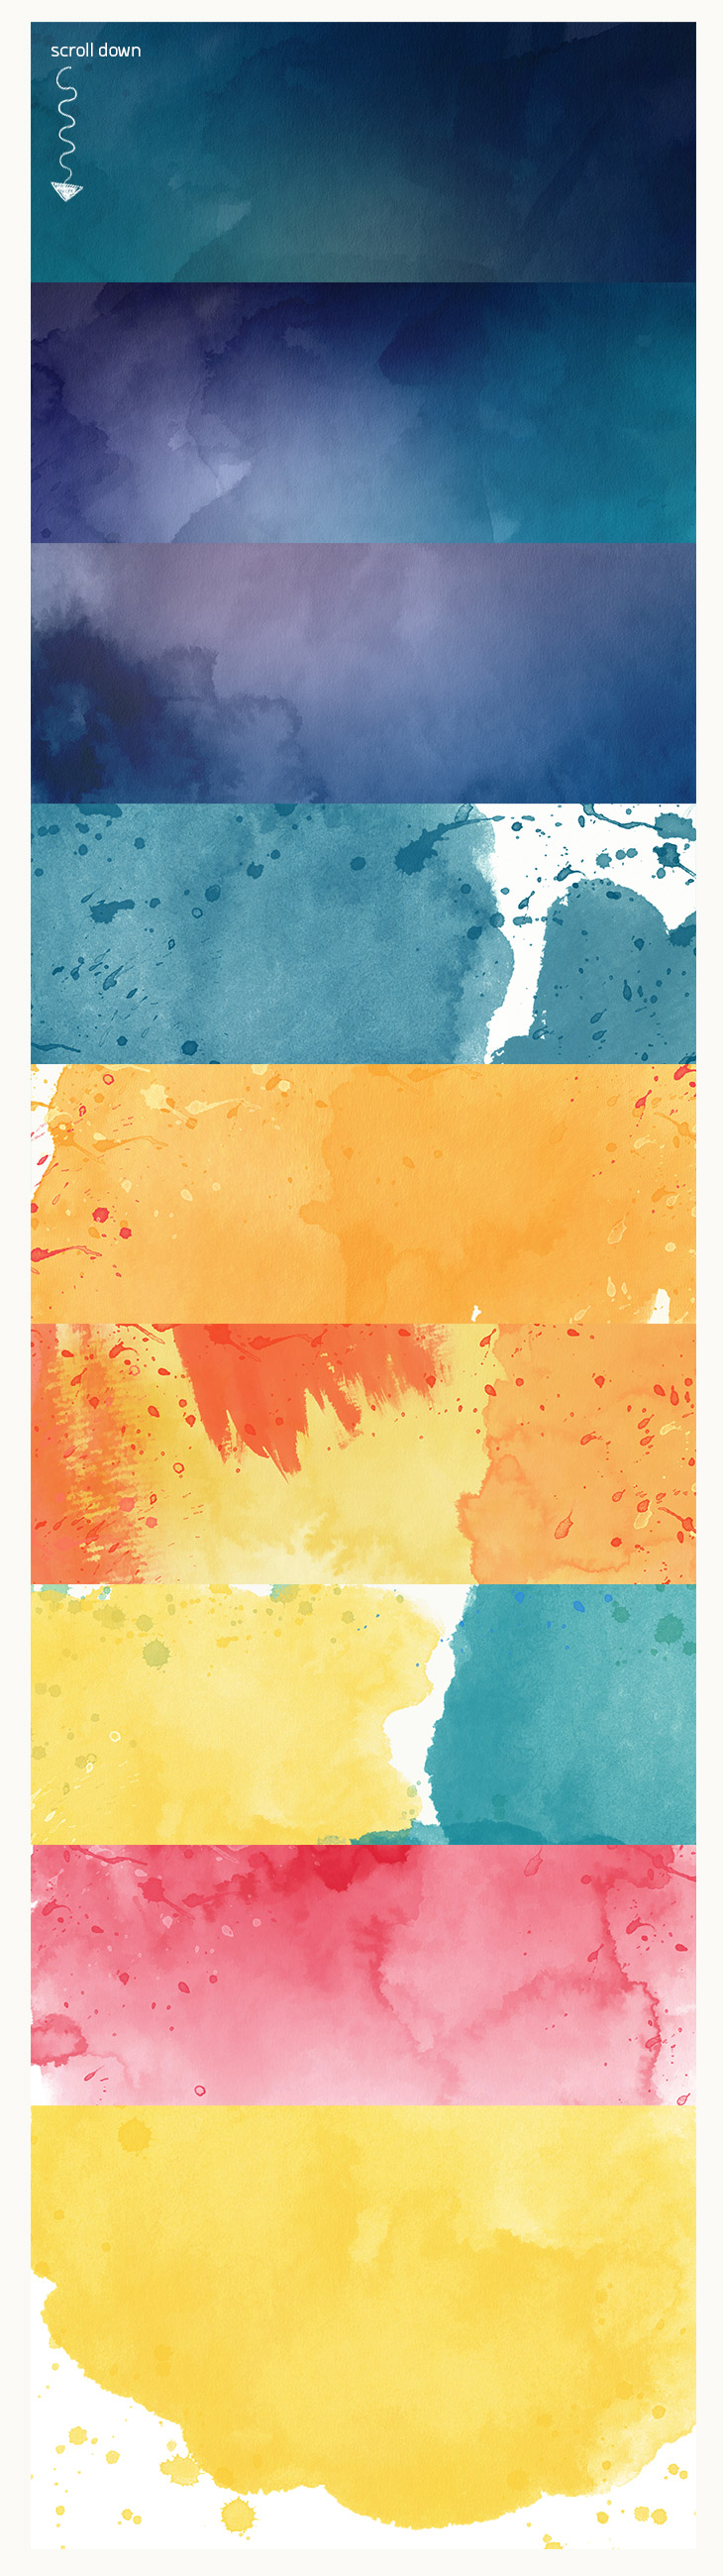 25-watercolor-backgrounds-3